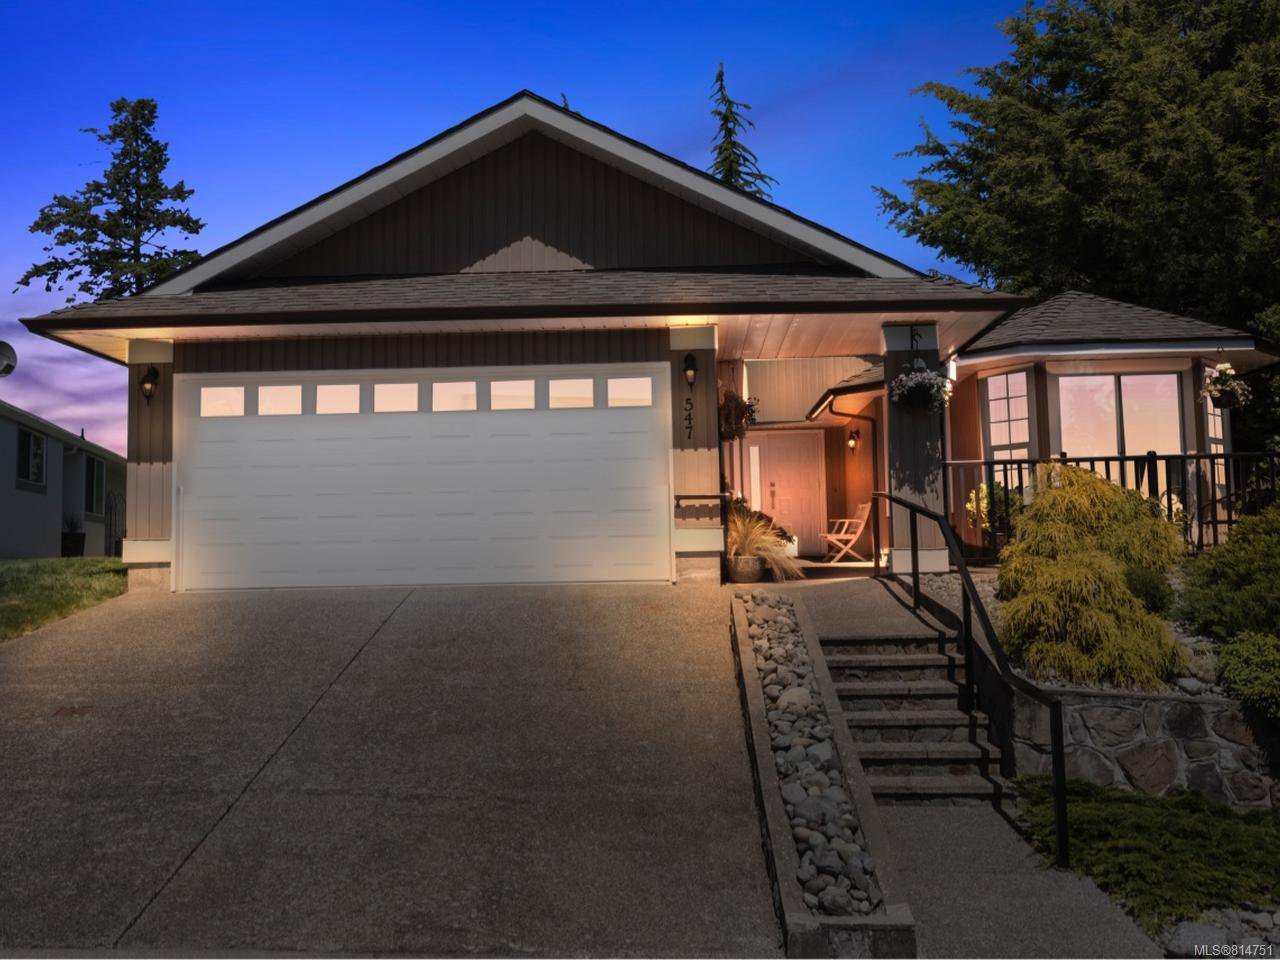 Main Photo: 547 Parkway Pl in COBBLE HILL: ML Cobble Hill House for sale (Malahat & Area)  : MLS®# 814751